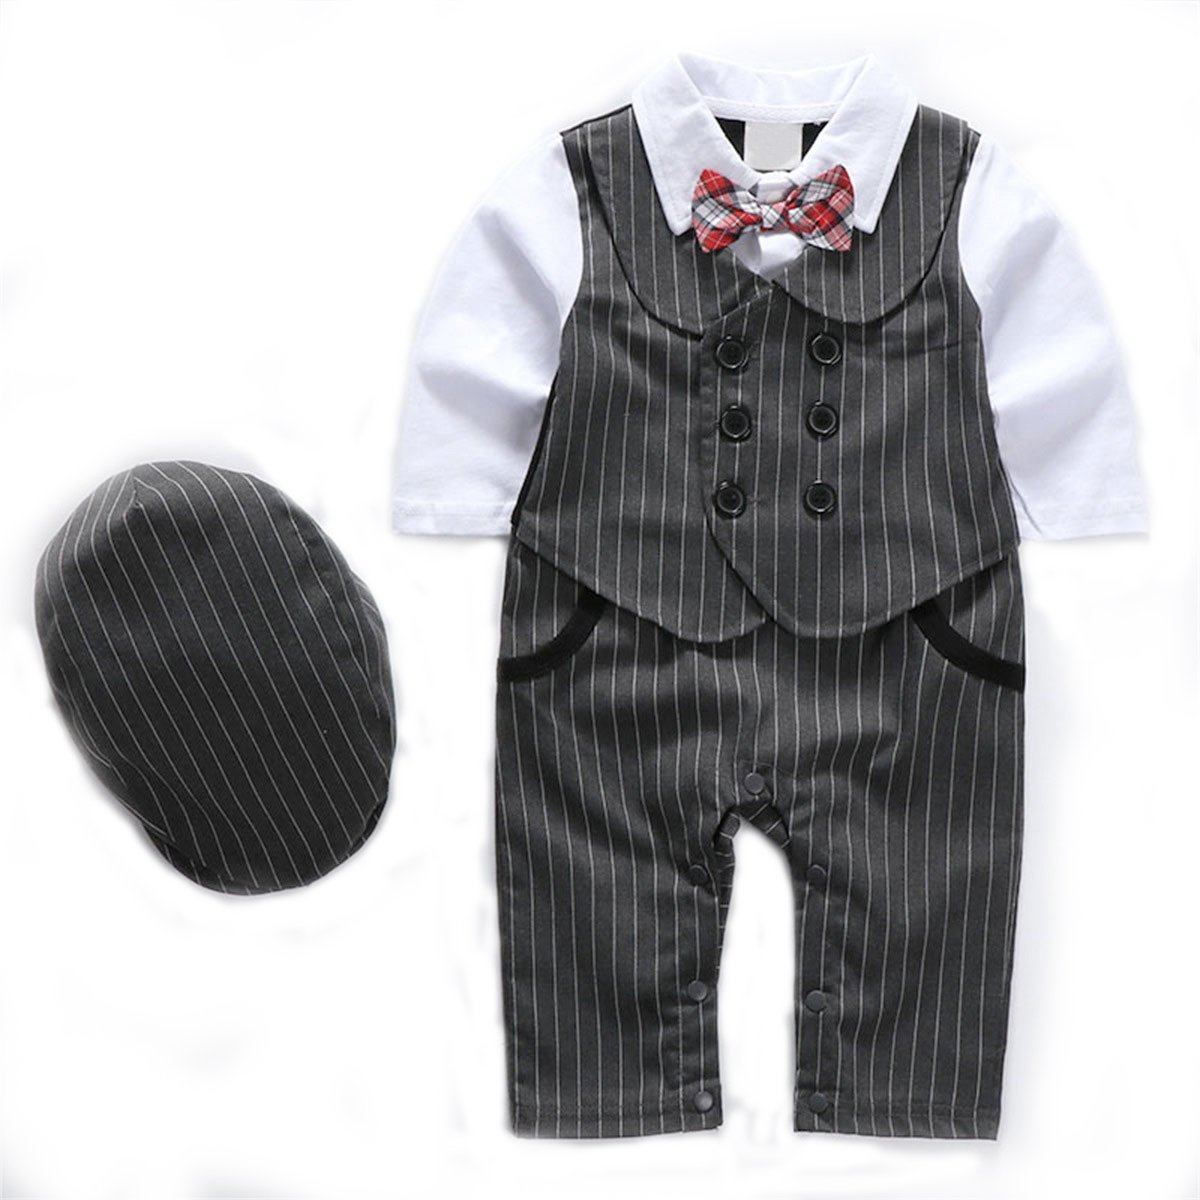 TOOTANN Baby Boy 1Pcs Rompers Clothing With Plaid Cap & Bow Tie